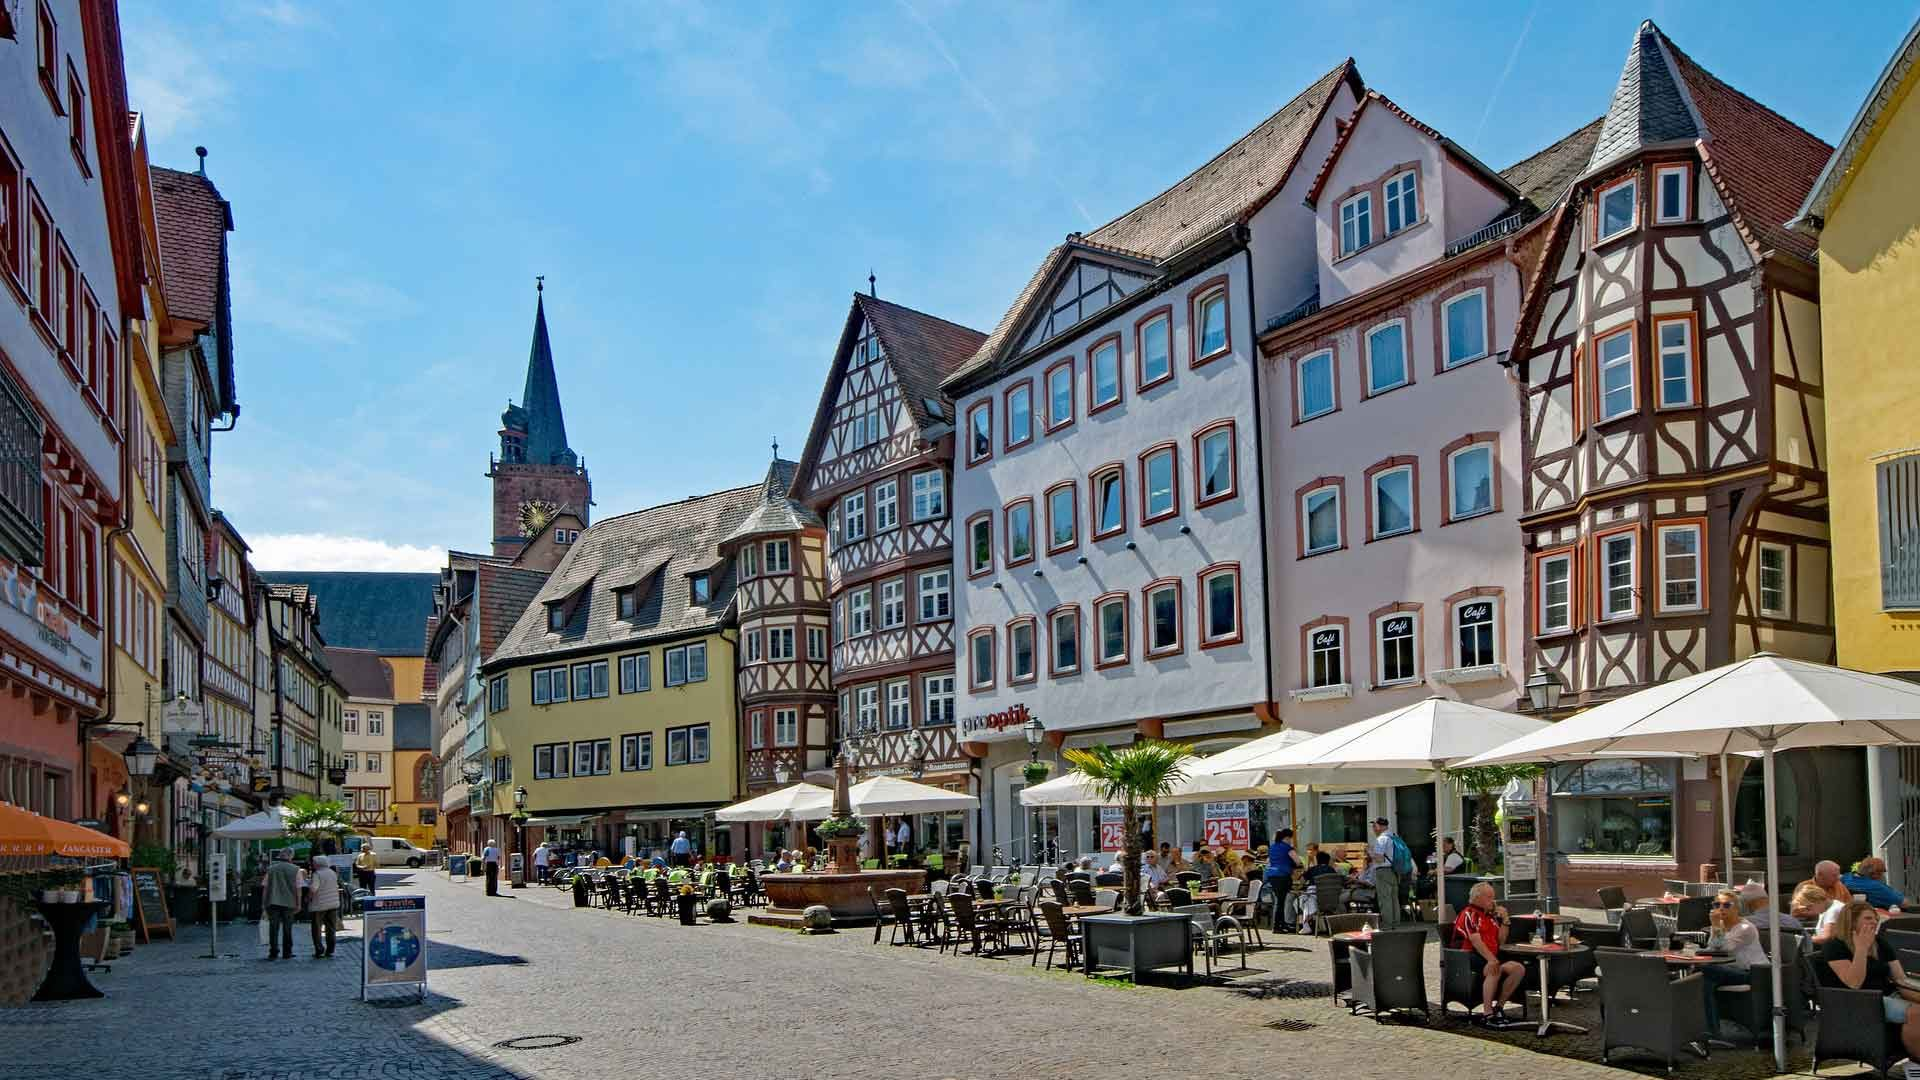 Het marktplein in Wertheim am Main.